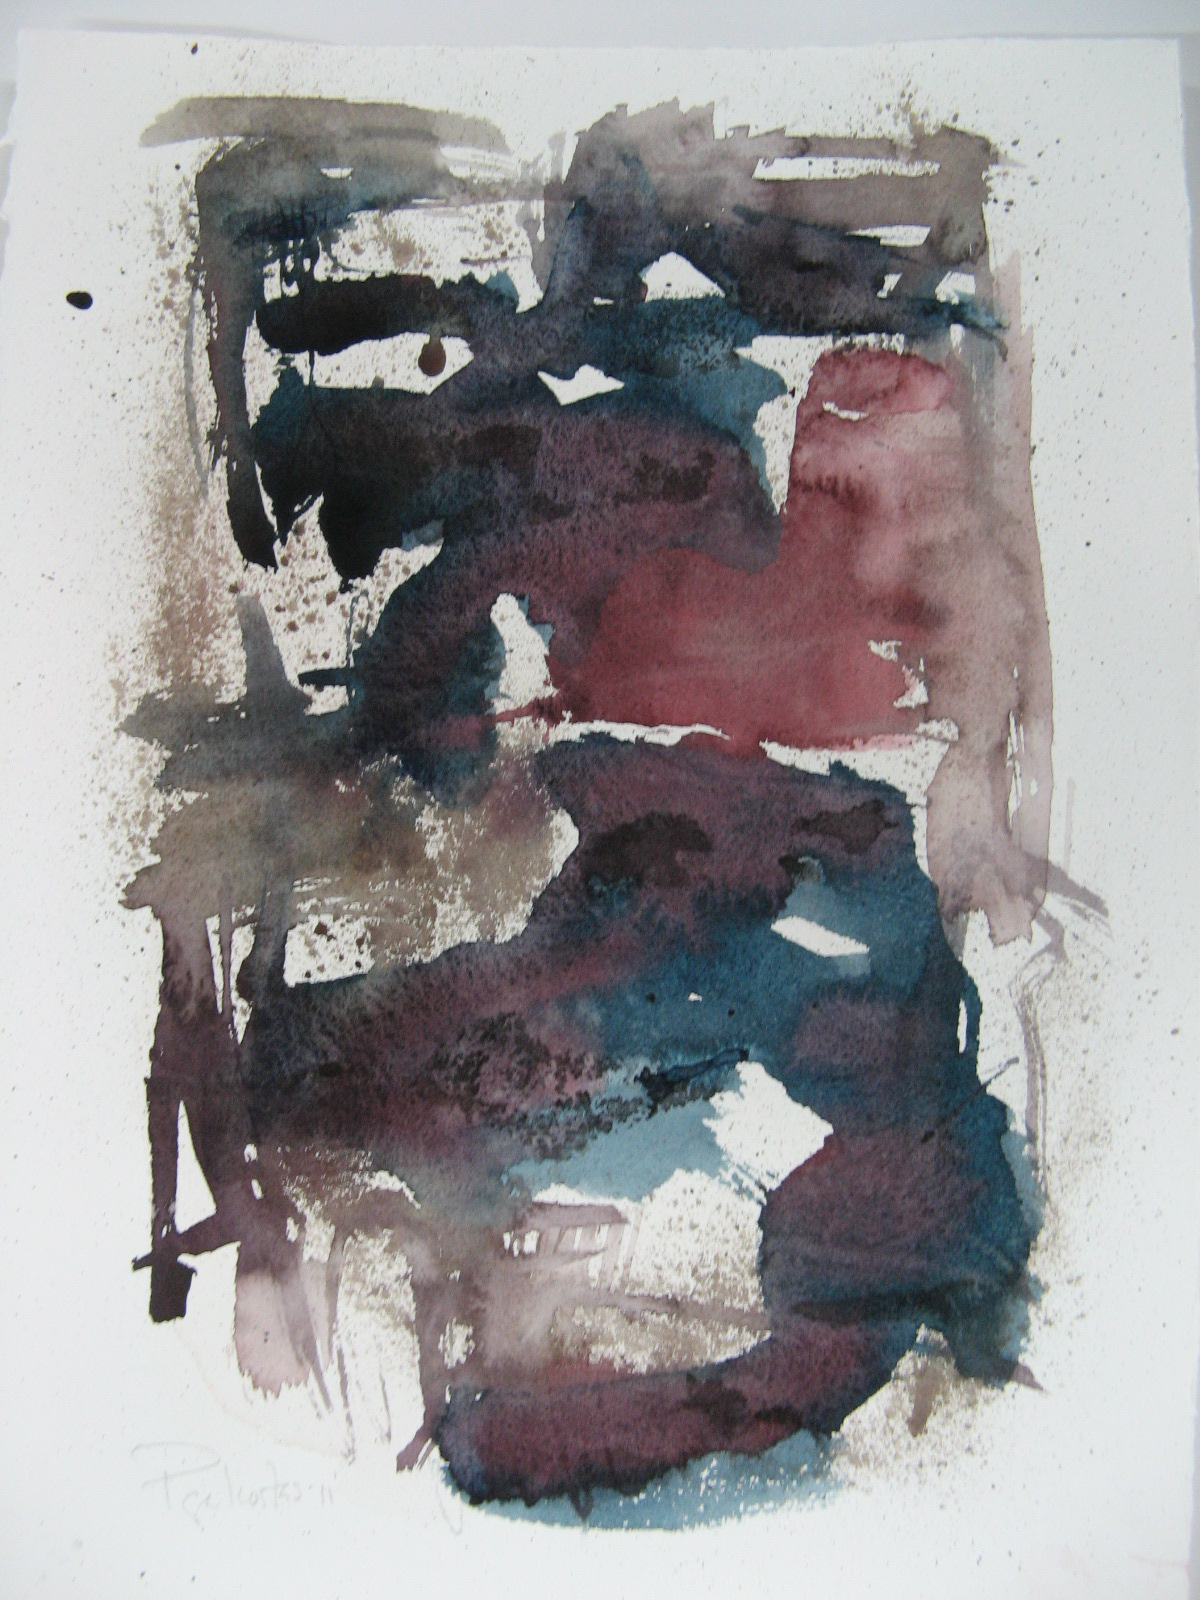 untitled 2011, watercolour on paper 38.10 x 27.94 cm (15 x 11in ) - IMG_1943.JPG